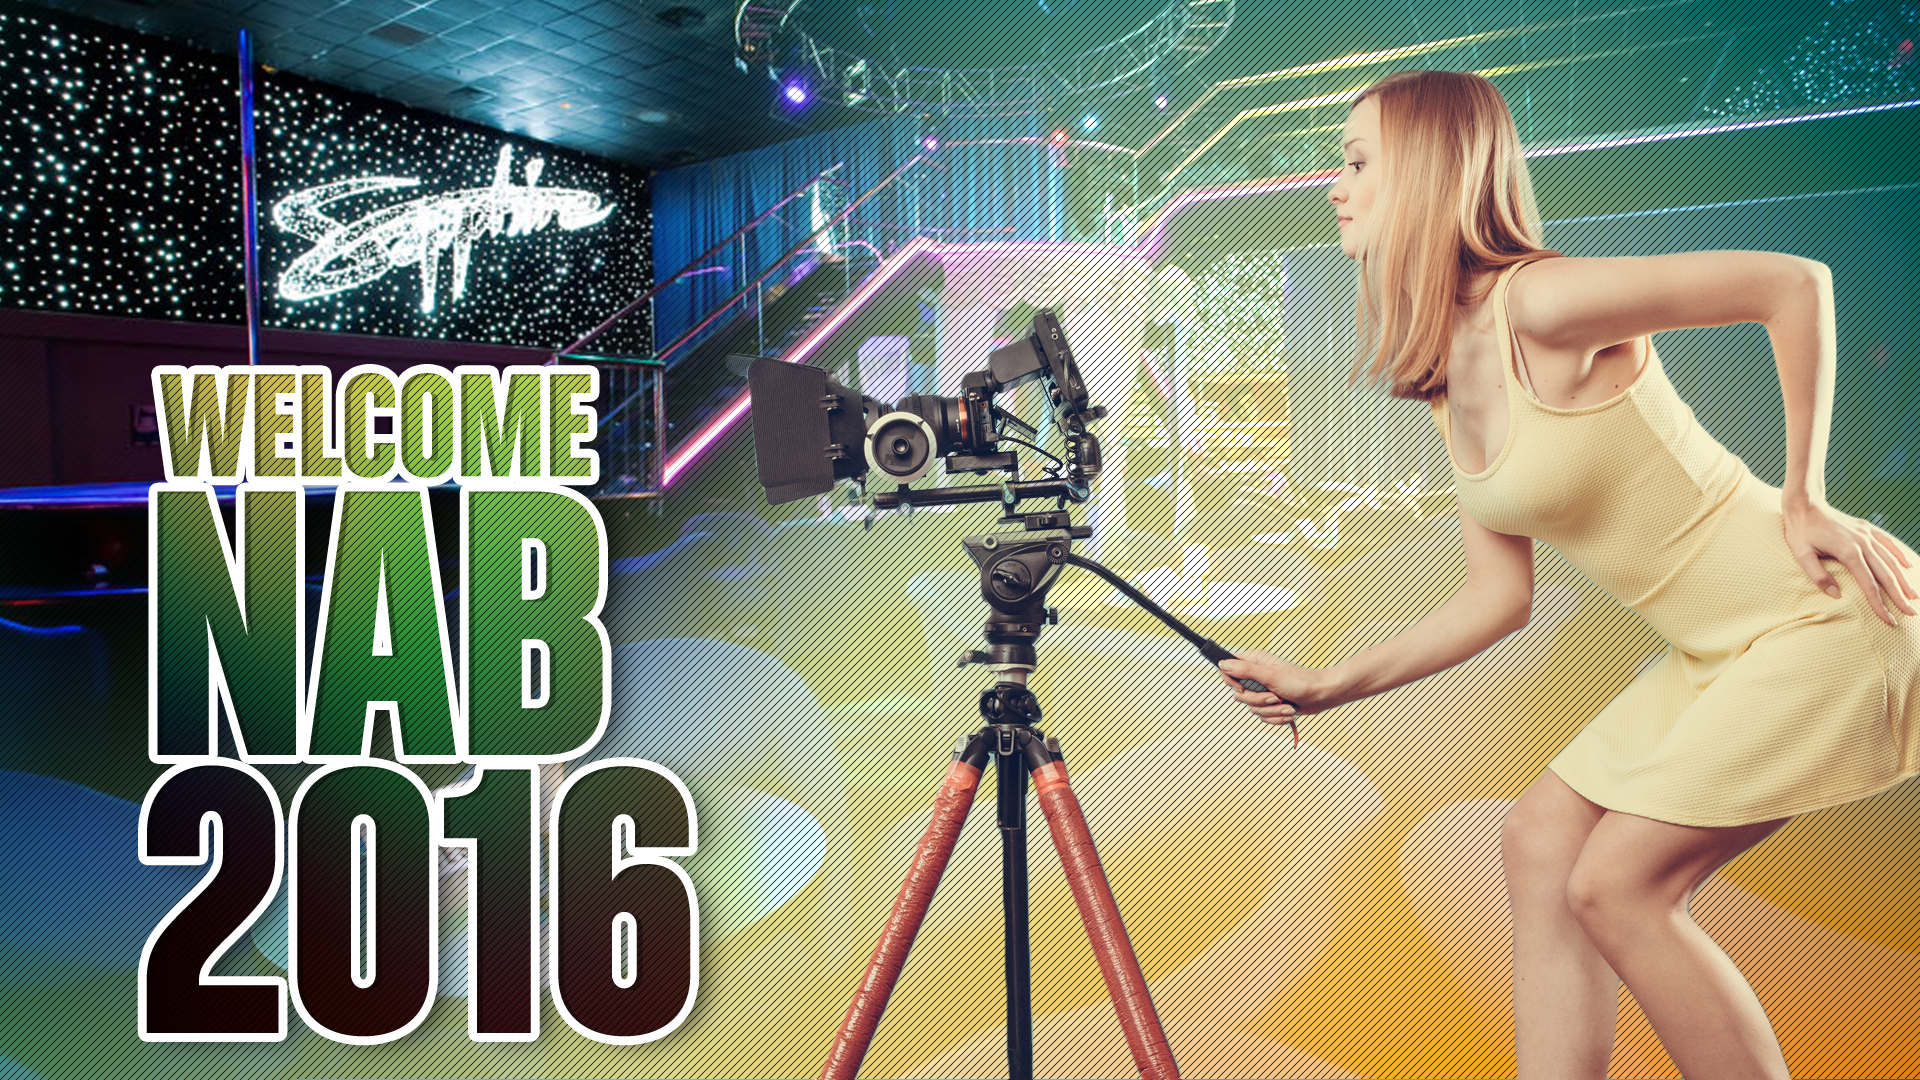 2015 nab show party at sapphire las vegas strip club for Pool show las vegas 2016